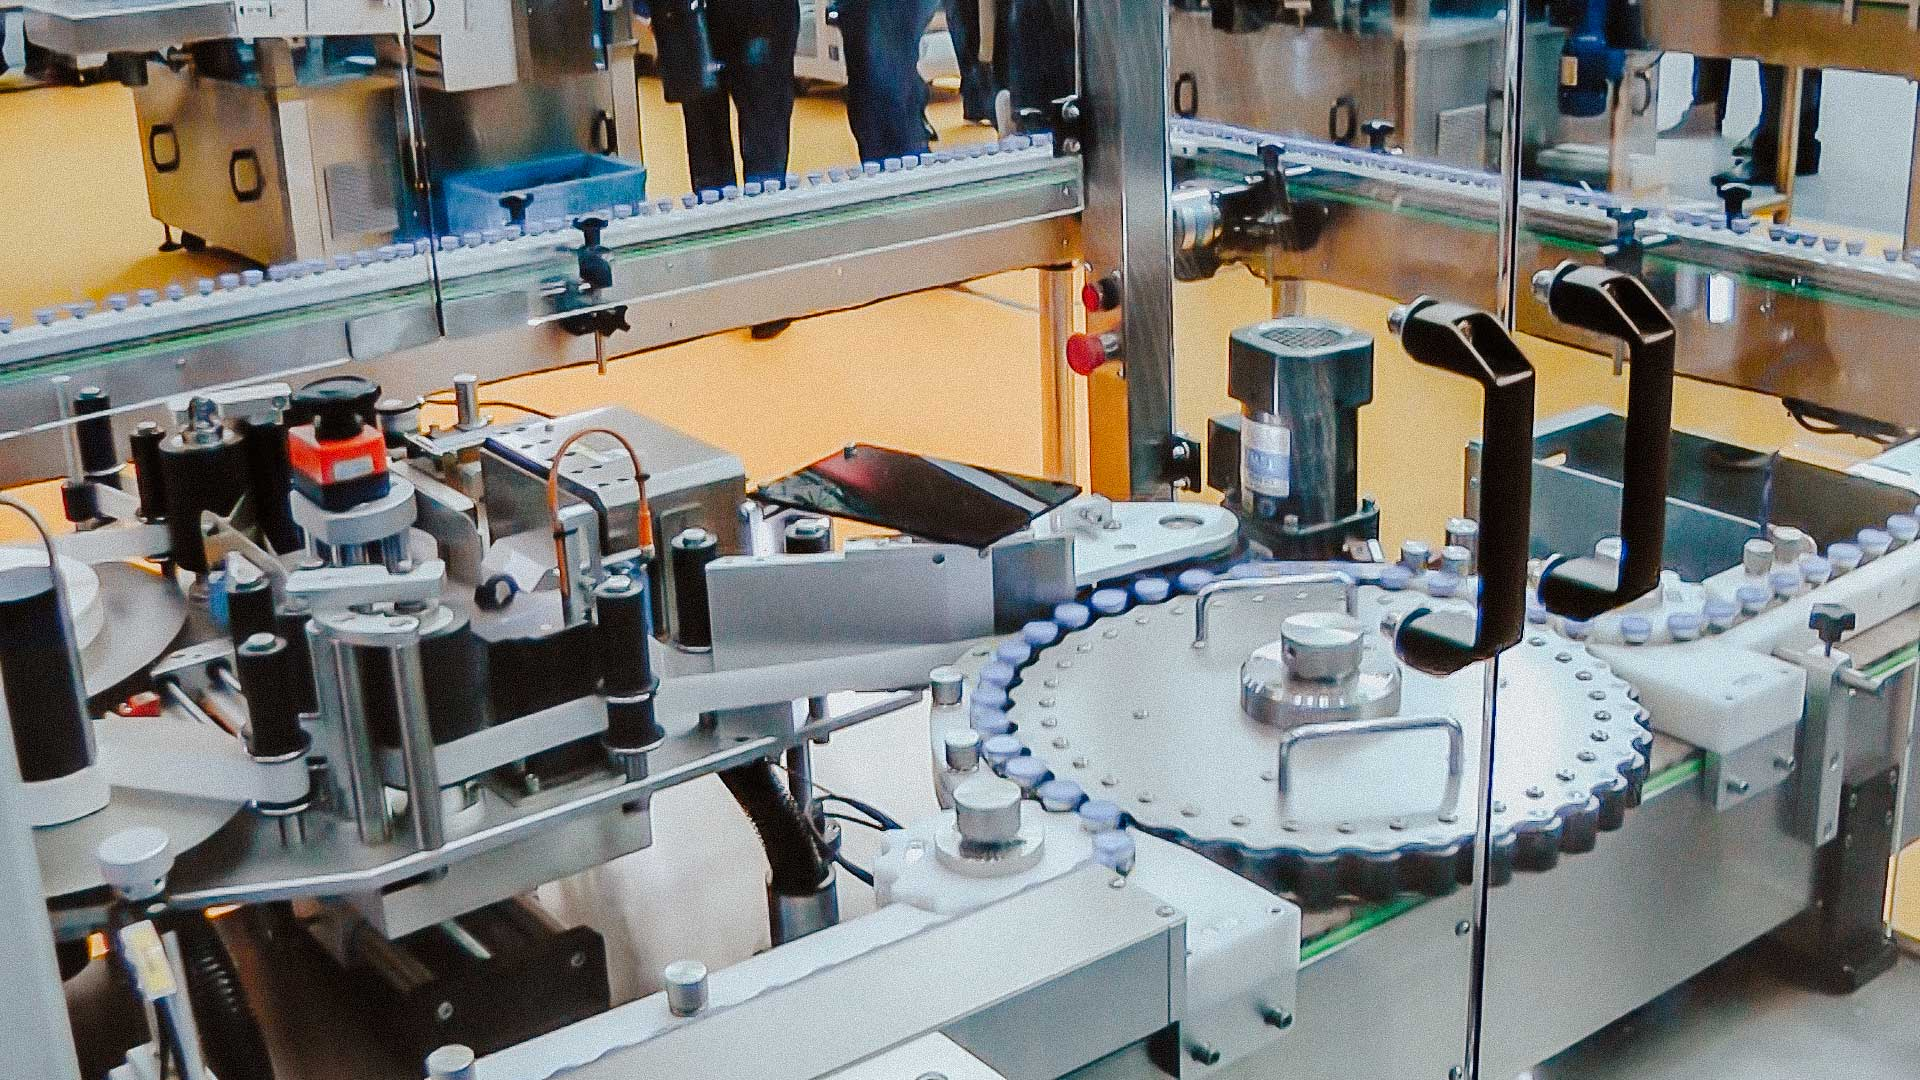 Automatic labeling equipment for sticking self-adhesive labels on penicillin bottles